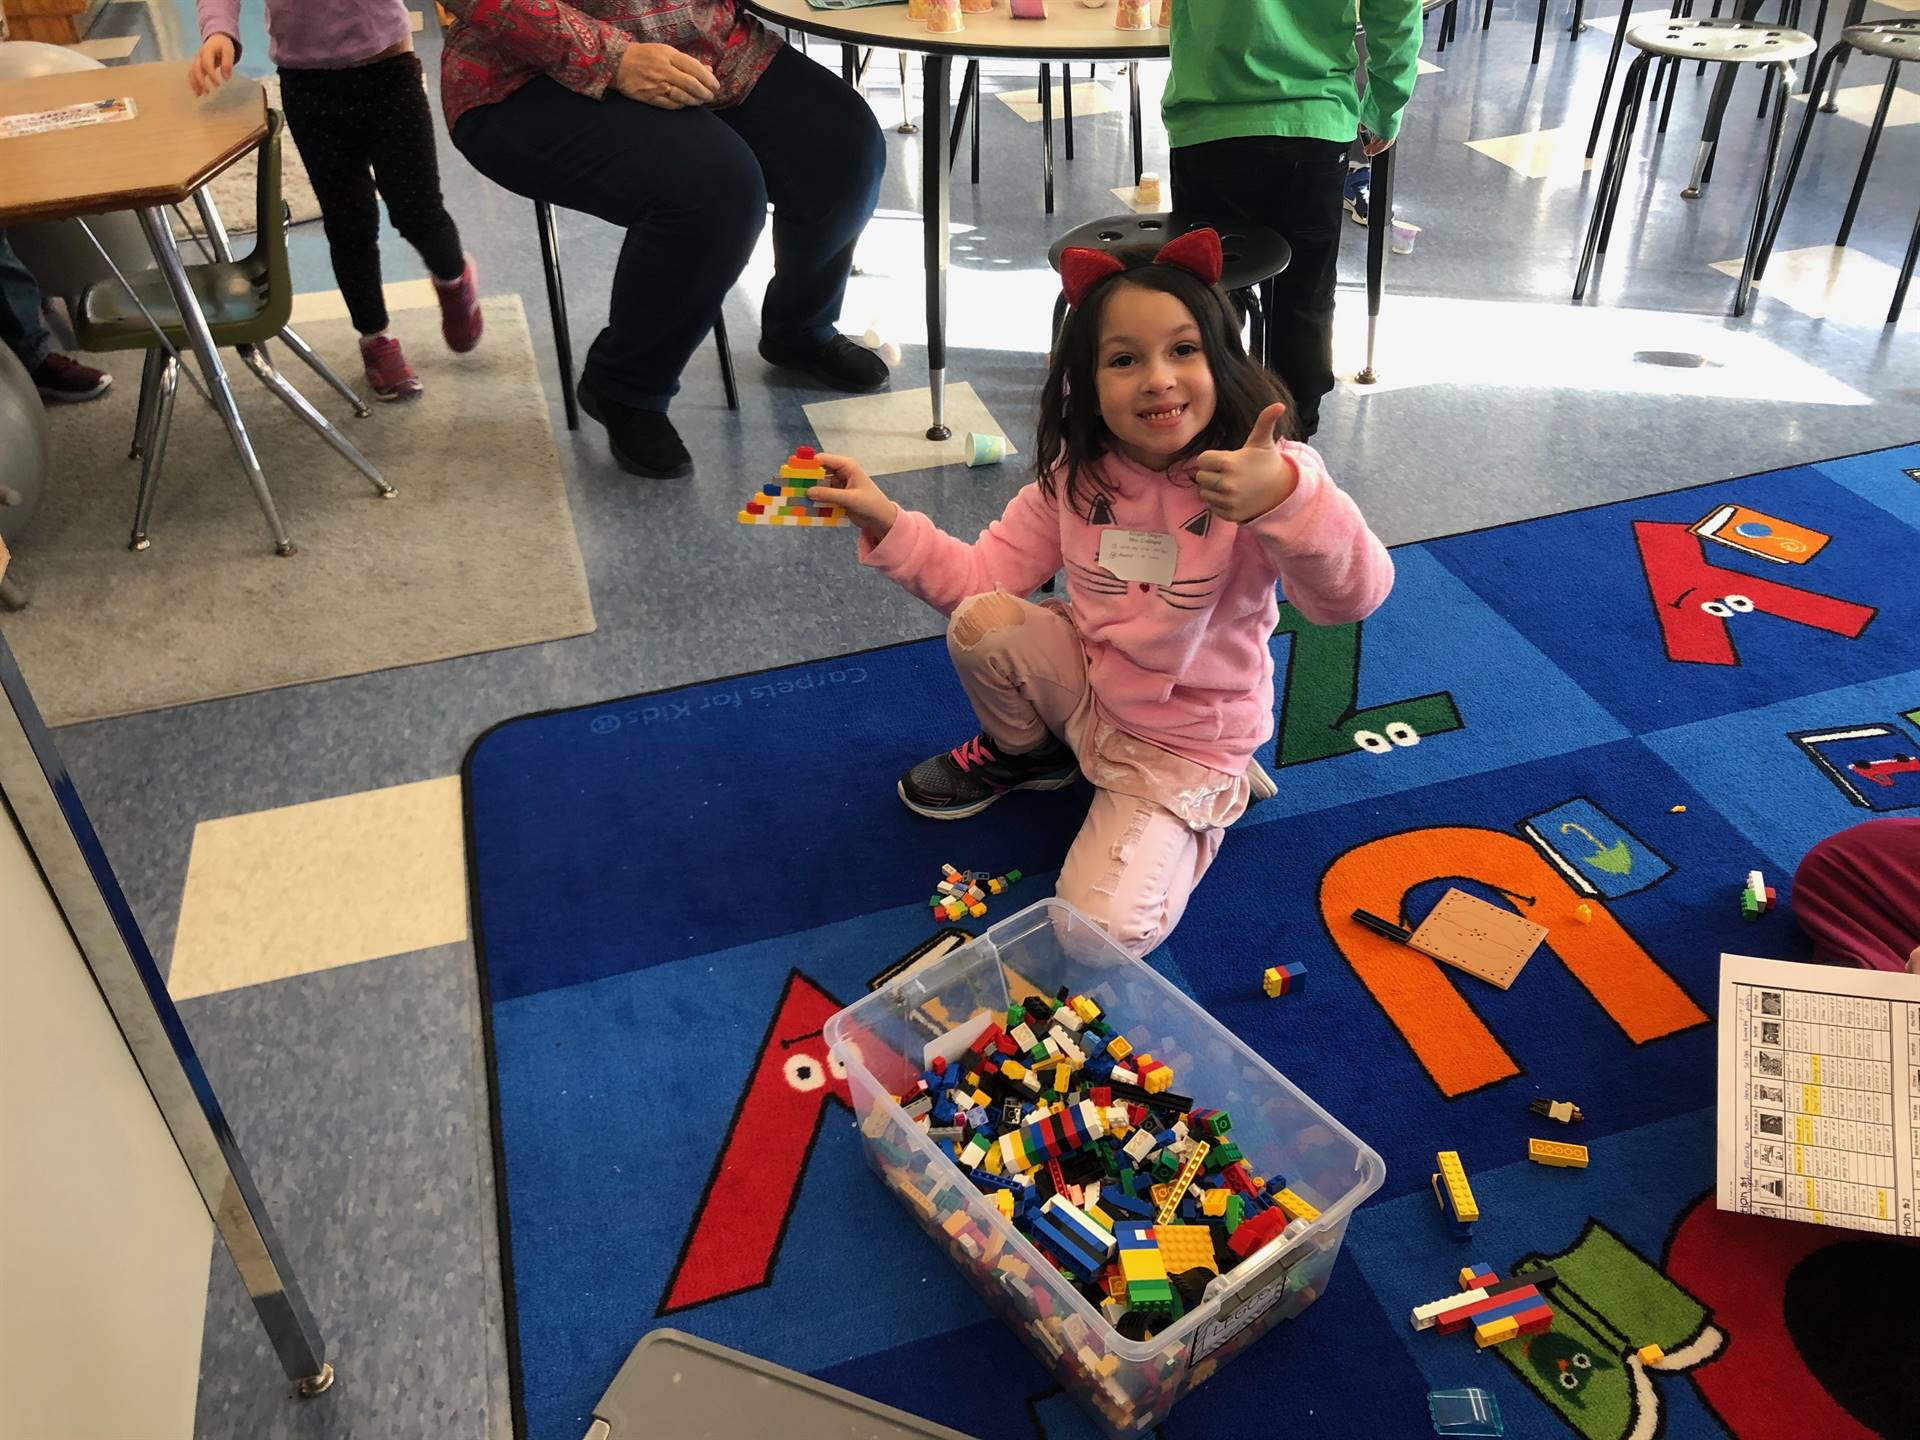 a student builds with 100 legos.